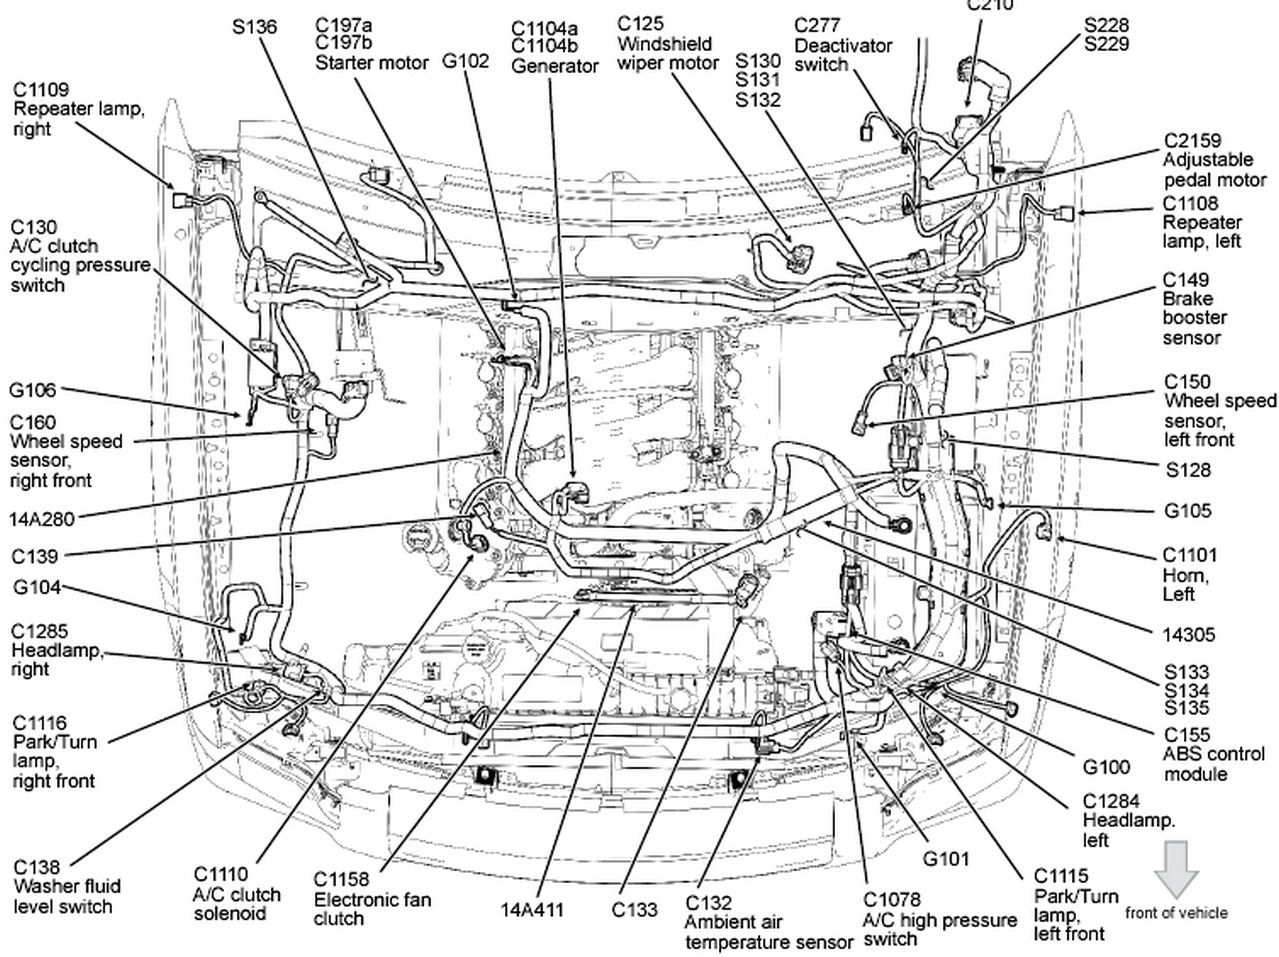 2006 Ford Taurus V6 Engine Diagram Wiring Diagram Effective A Effective A Bowlingronta It